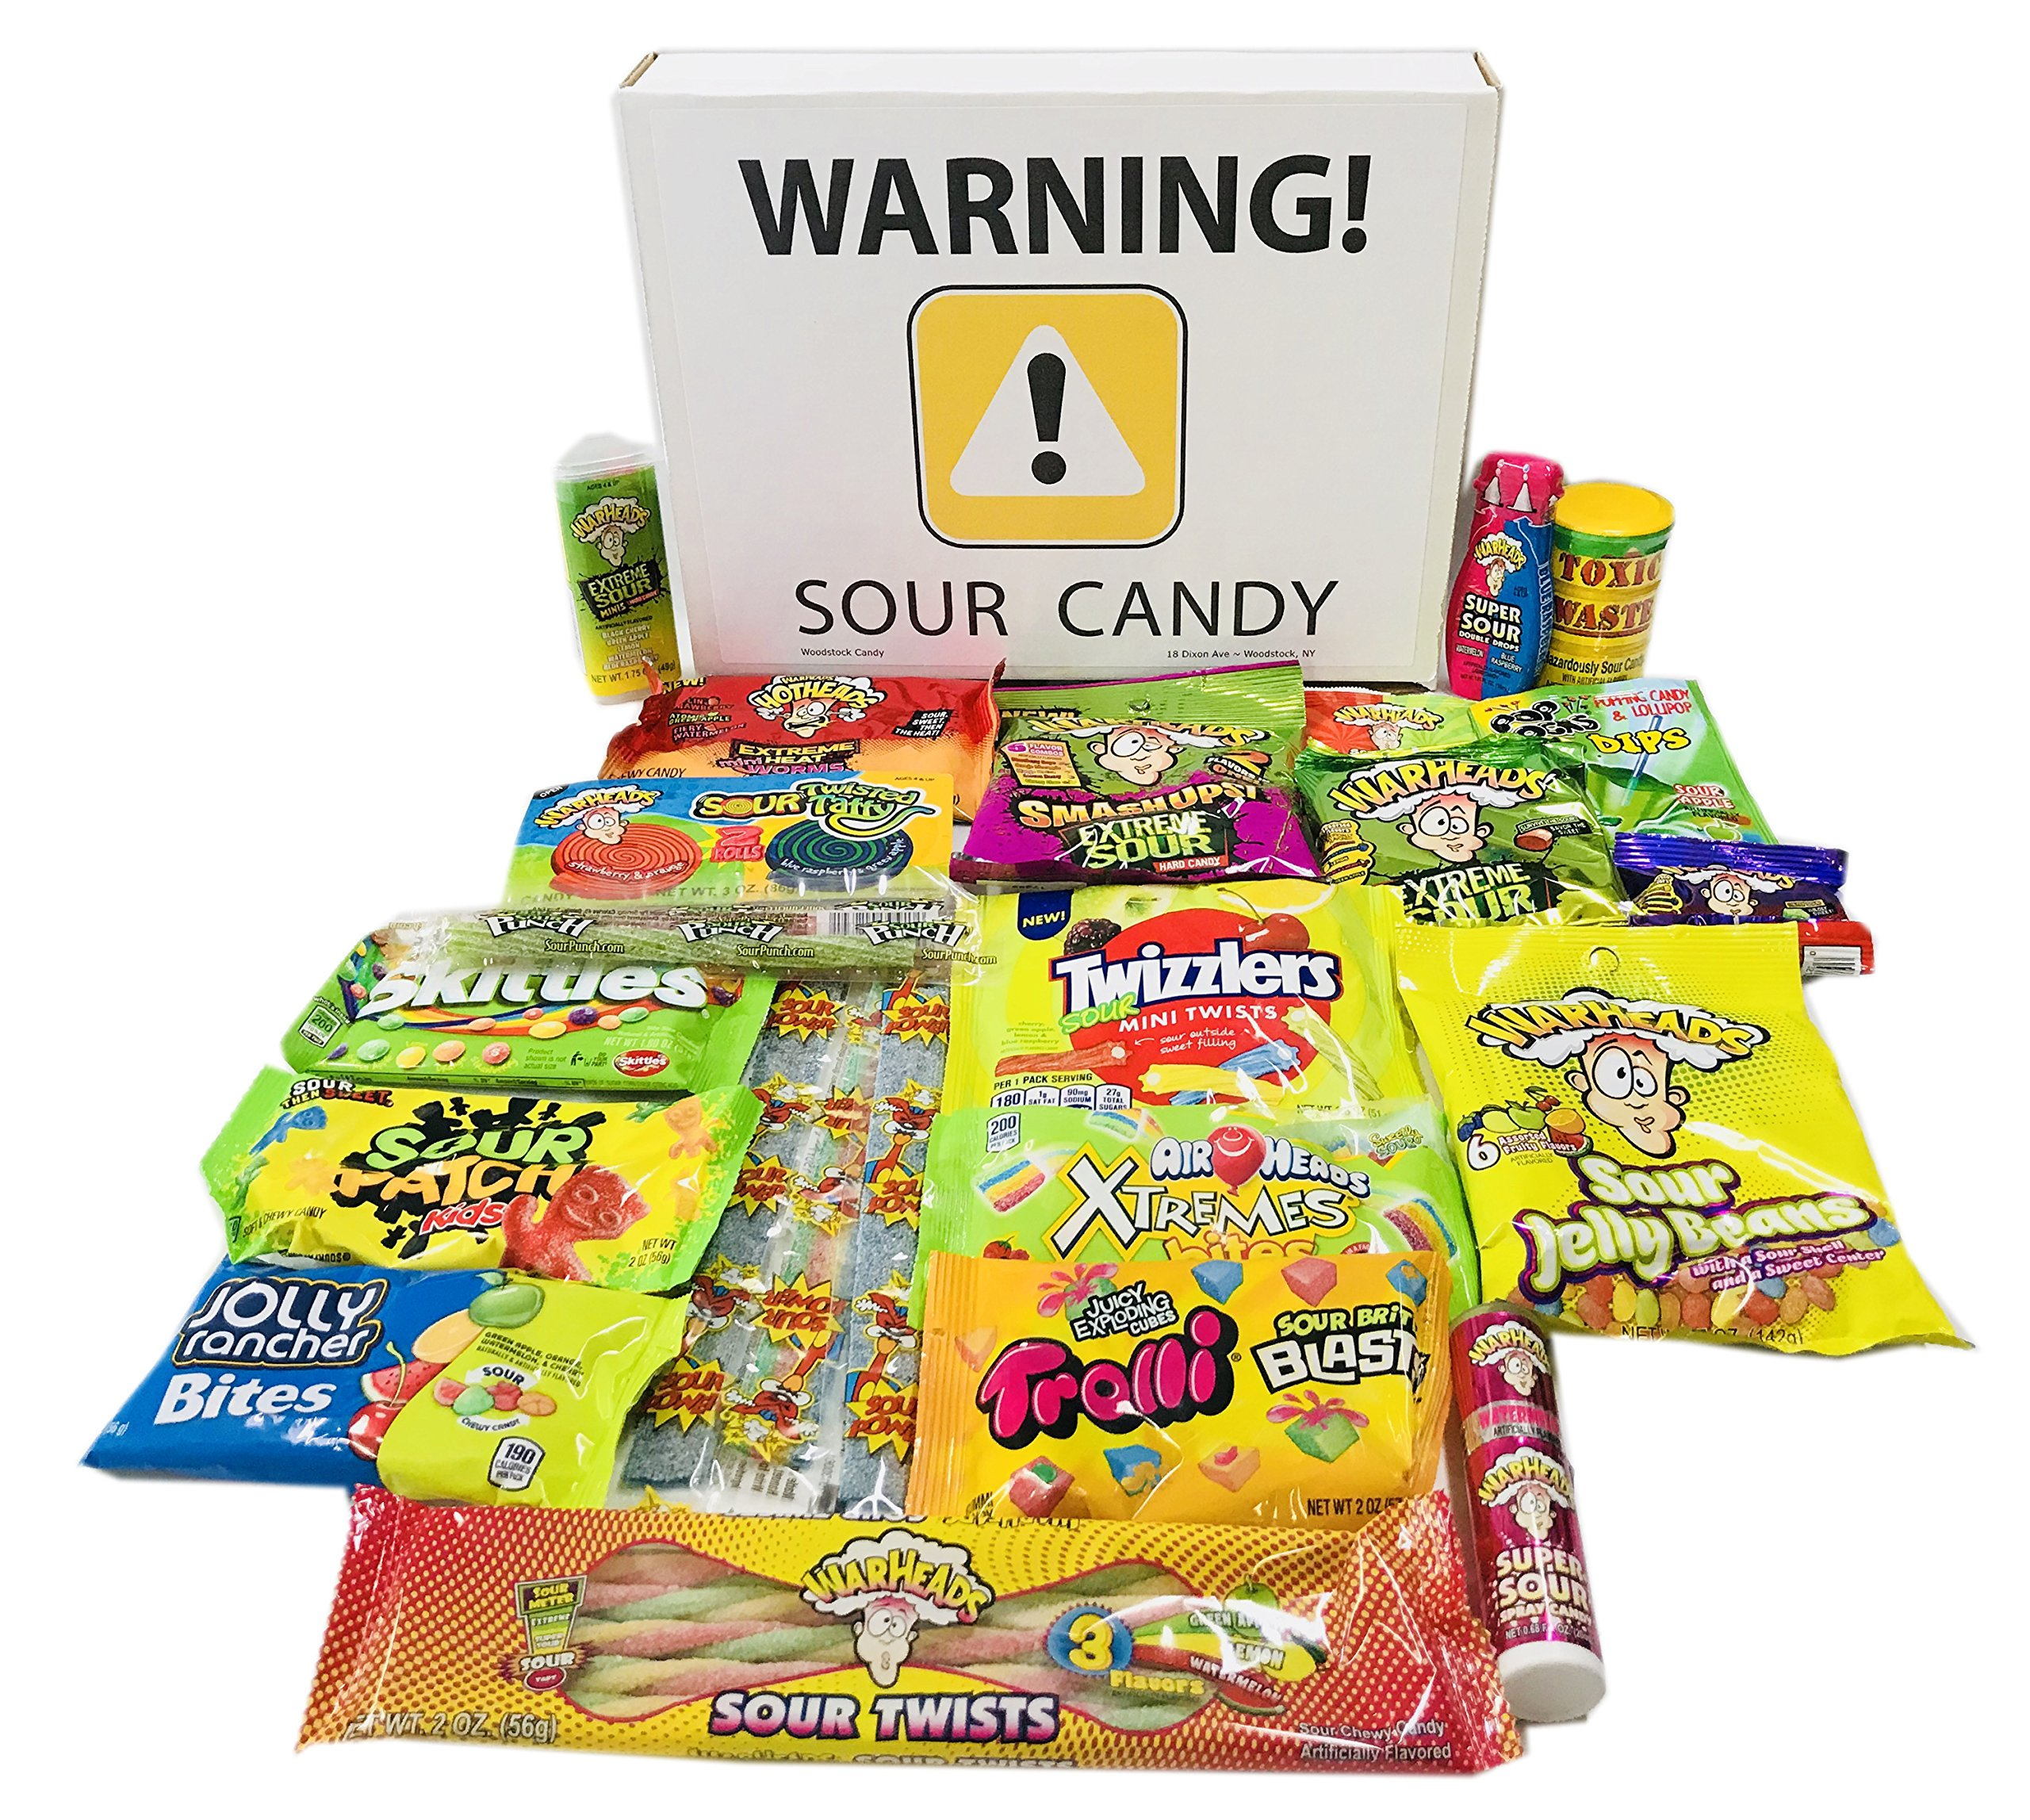 Sour Candy Assortment Gift Box ~ Warheads Extreme Sour Hard Candy, Toxic Waste, Sour Patch Kids, Belts, Spray, Straws, Airheads Xtreme Bites, Brite Blasts, Pop Rocks Dip, Pucker Pack Powder, and more by Woodstock Candy